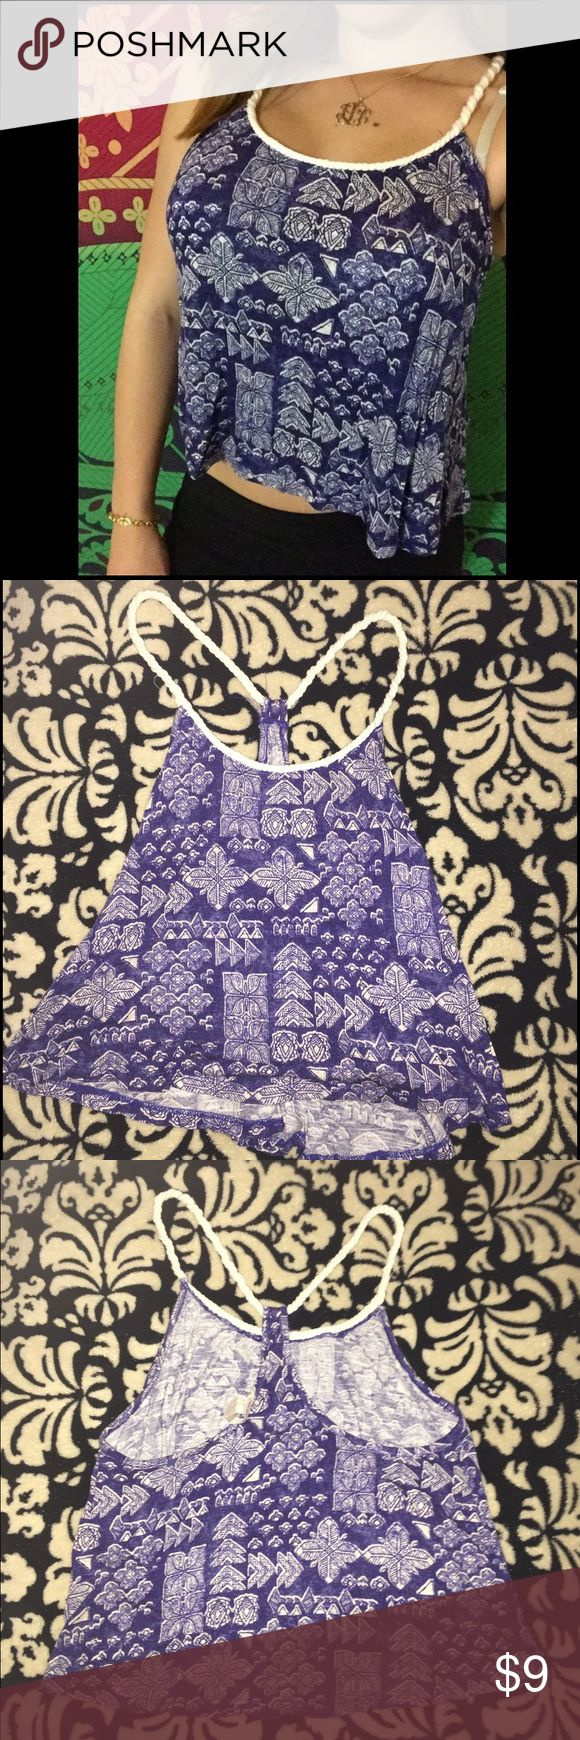 Blue & White Forever 21 Braided Racerback Crop top Only worn twice! In perfect condition. Printed blue and white crop top. Is a racerback. I suggest hand washing and drying bc the straps can get messed up. Forever 21 Tops